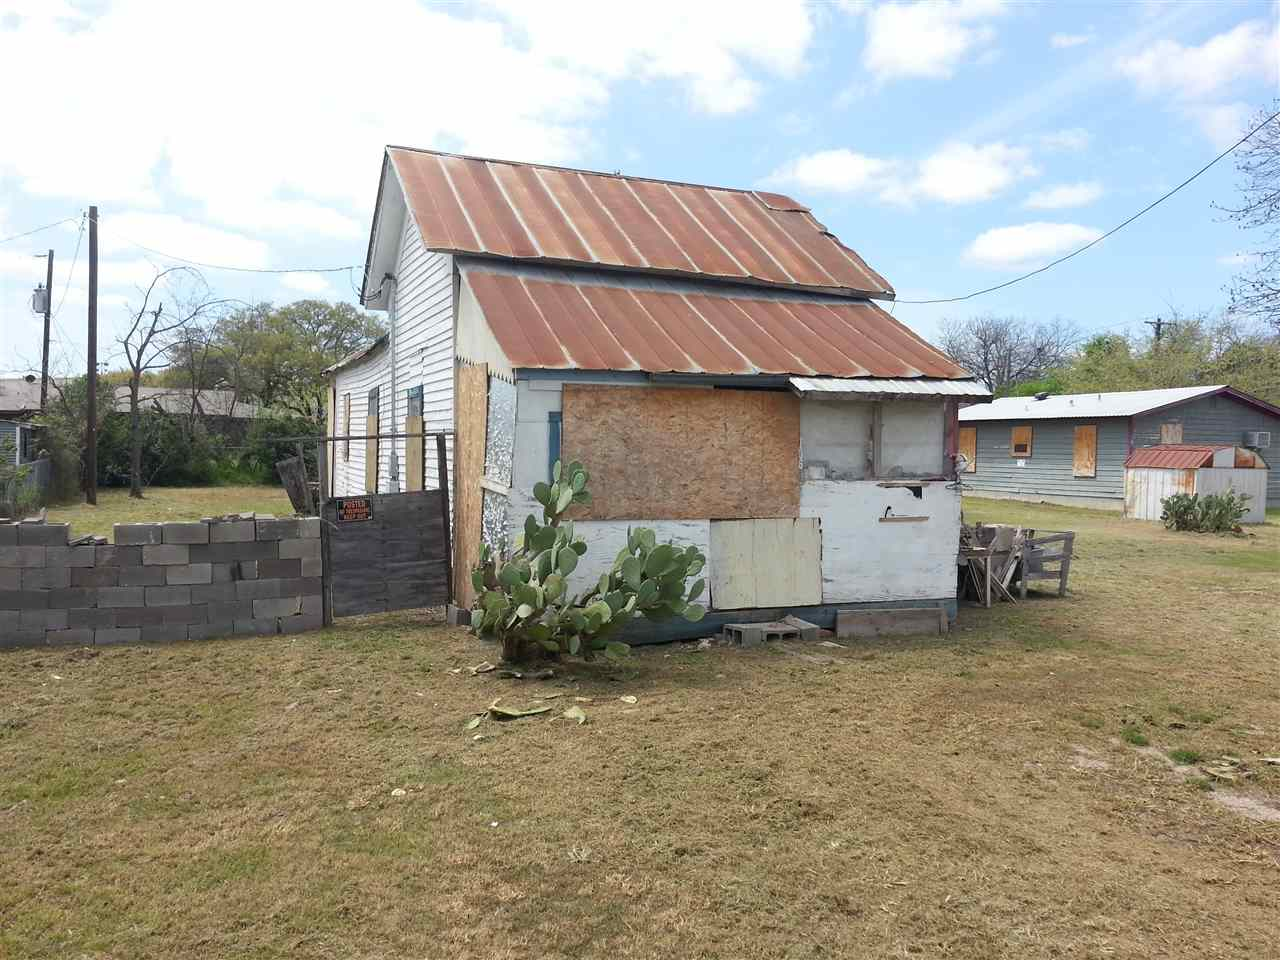 Additional photo for property listing at 310 E Sixth Street  Lampasas, Texas 76550 United States